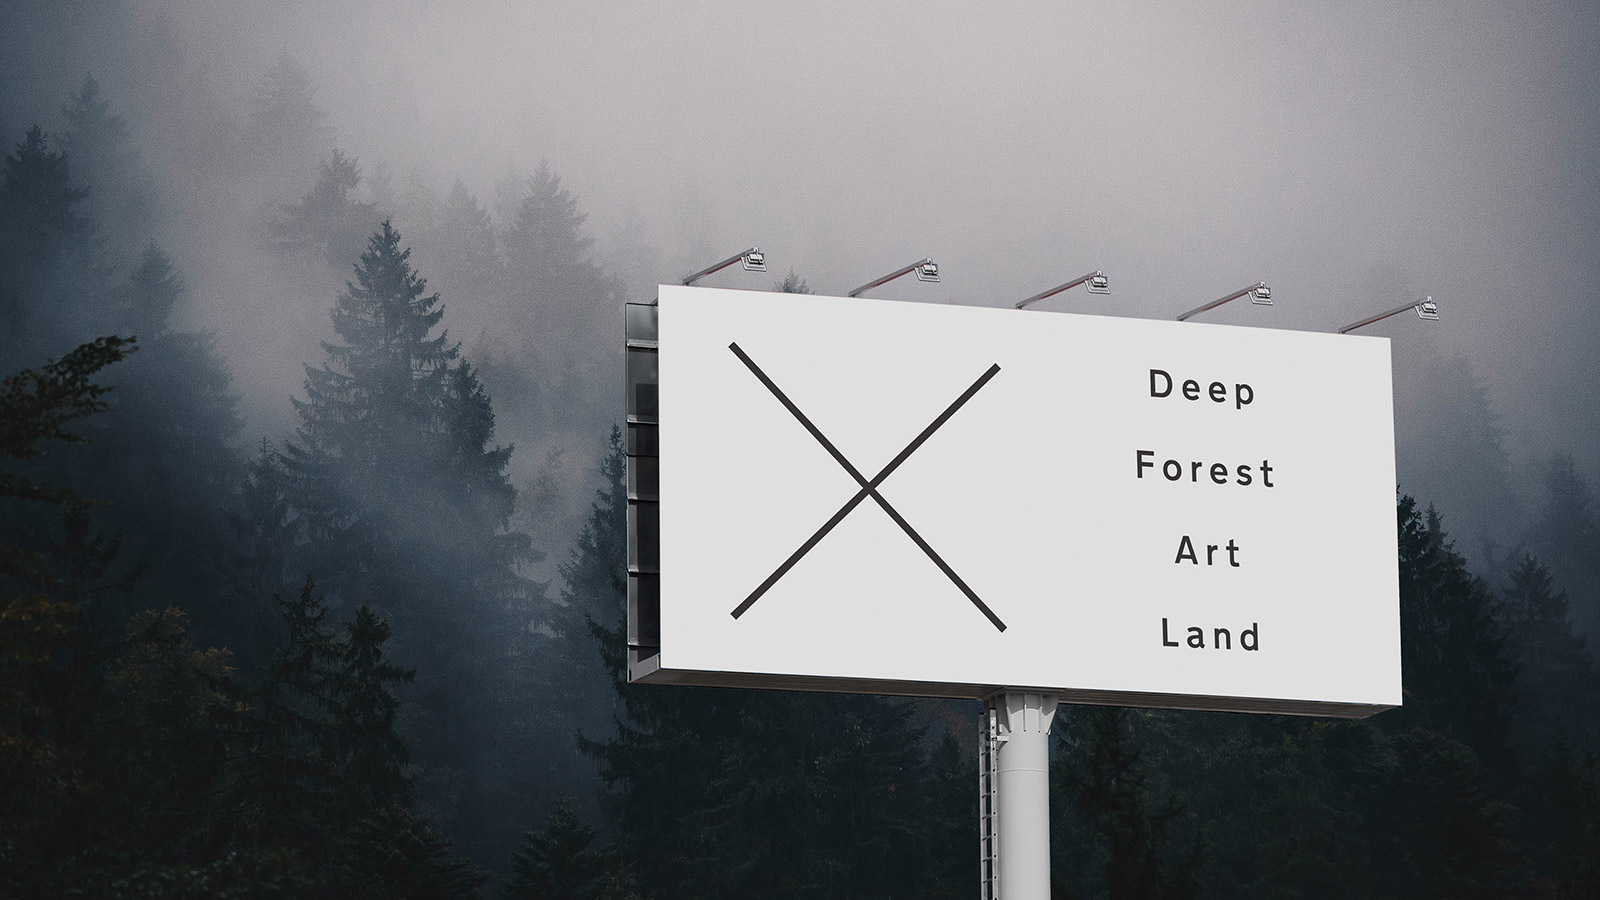 Deep Forest Art Land billboard